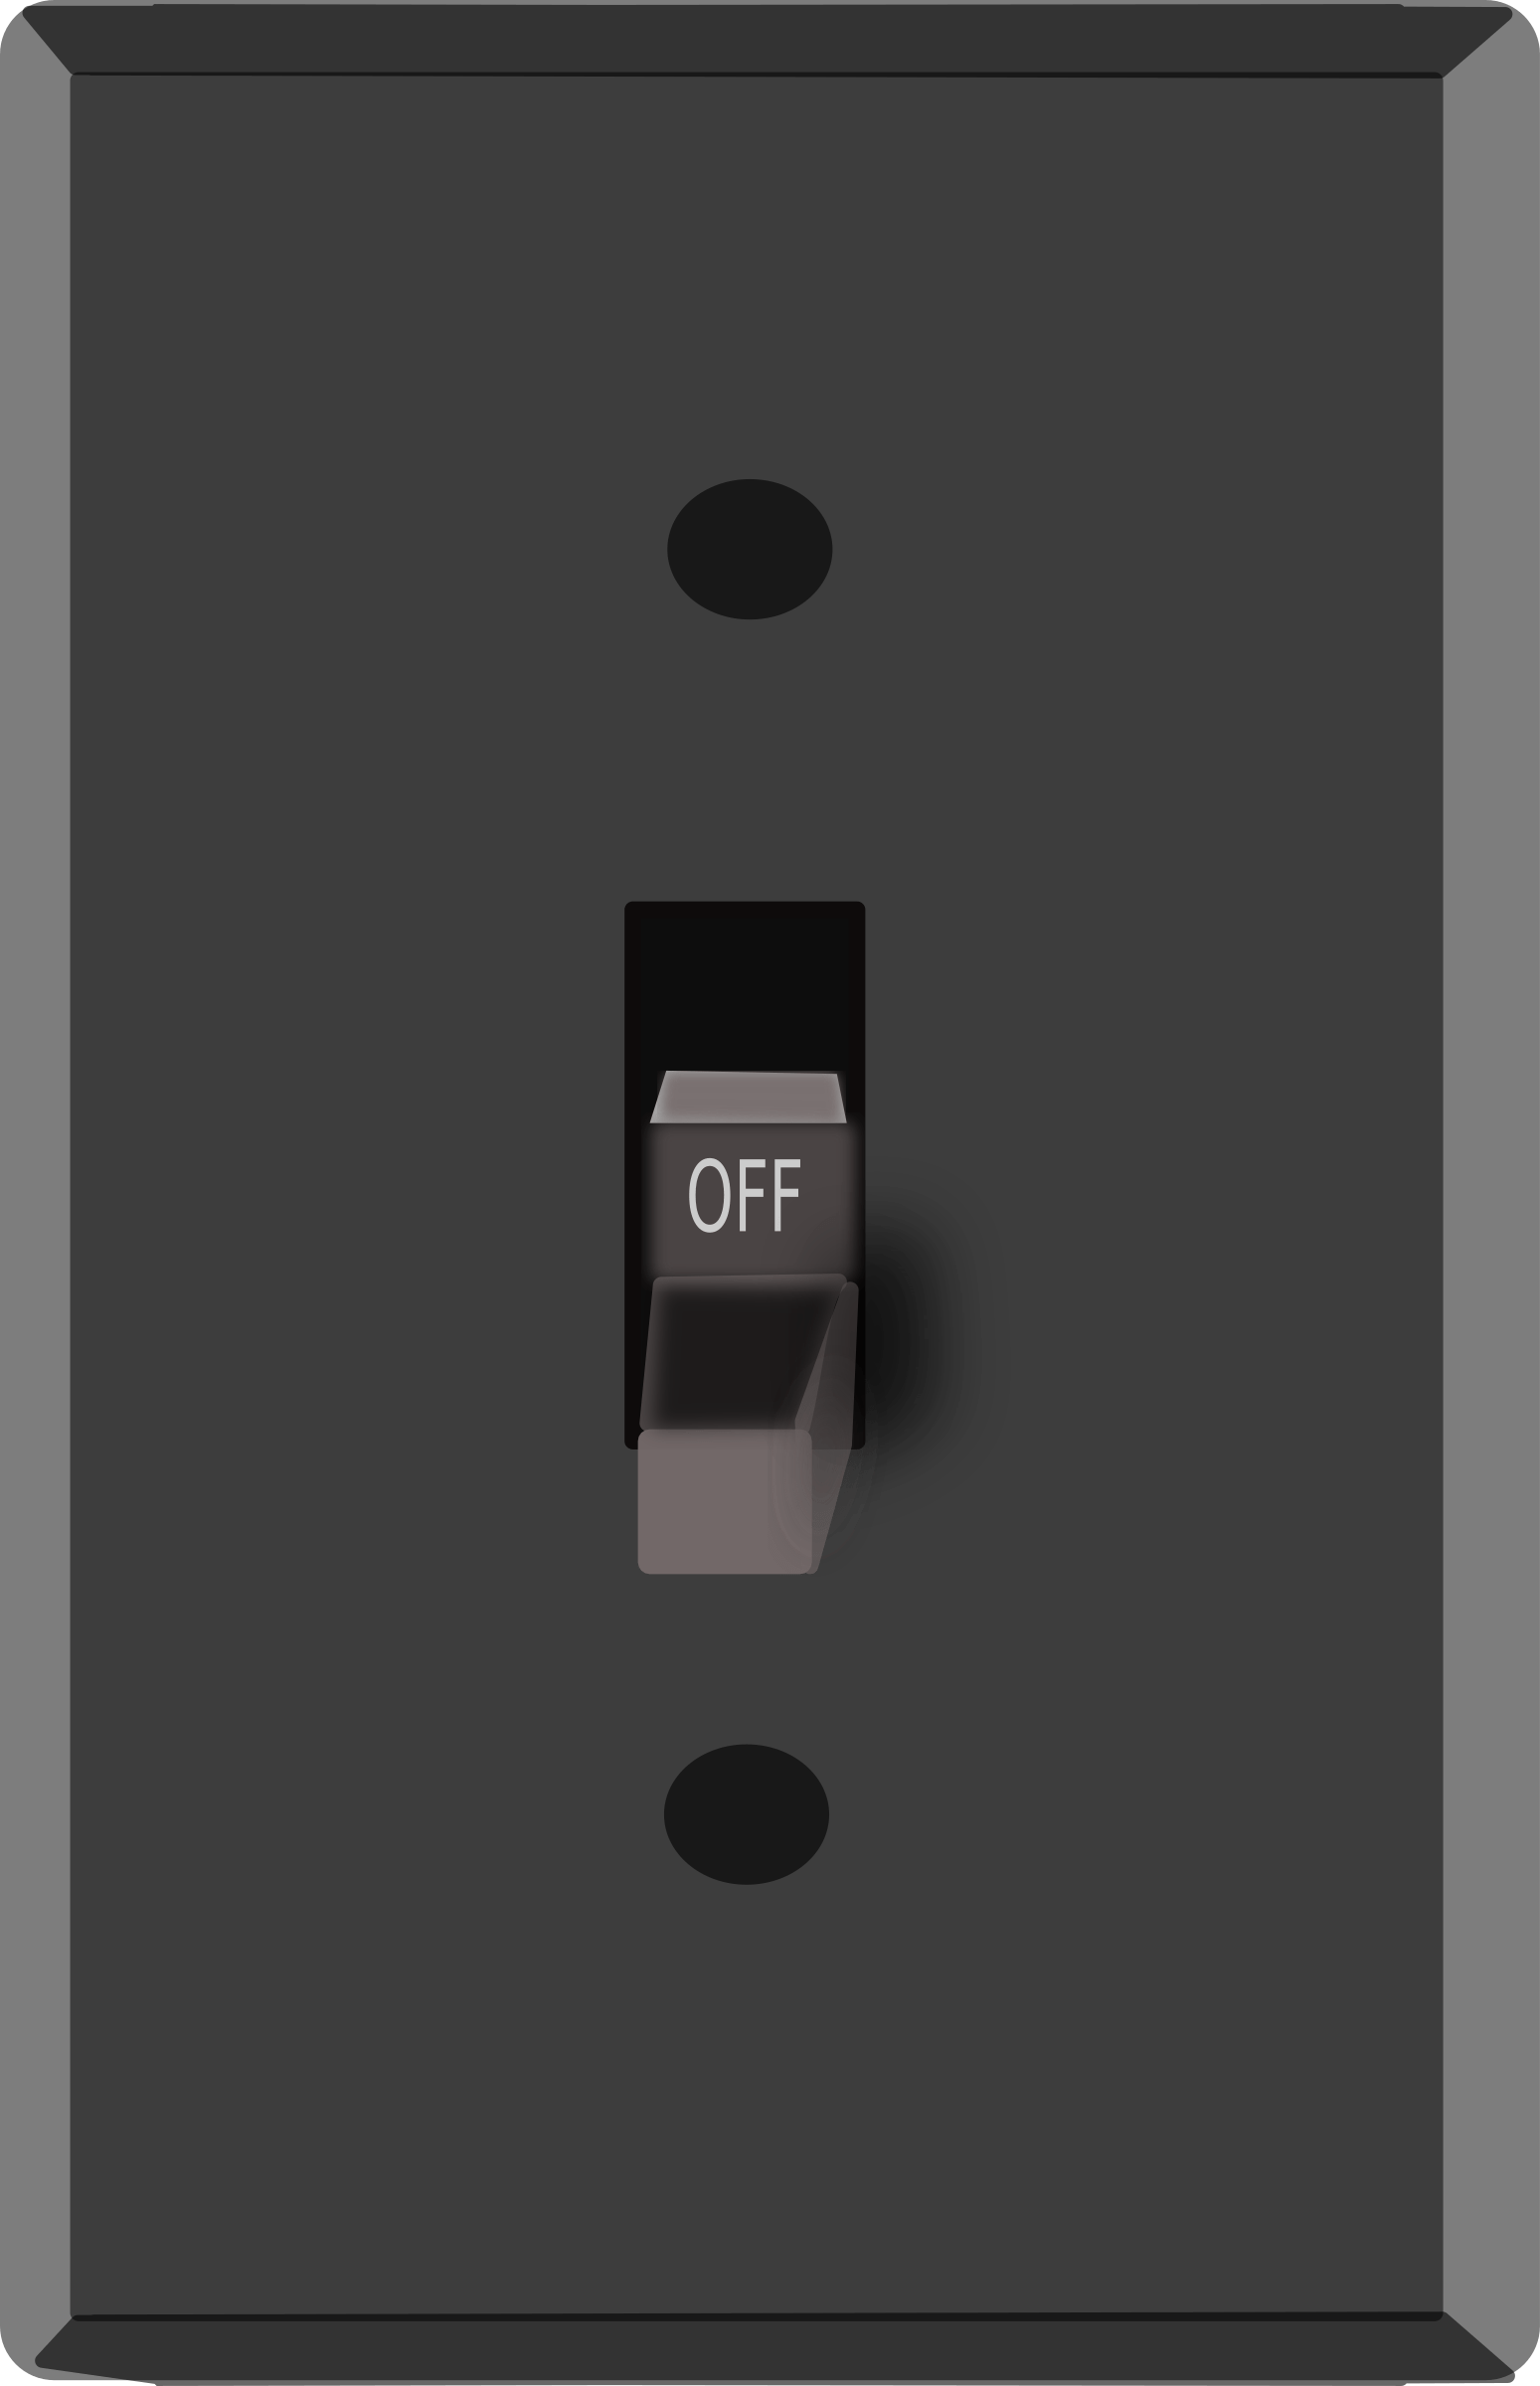 Light Switch Off Clipart Clipart Light Switch Off